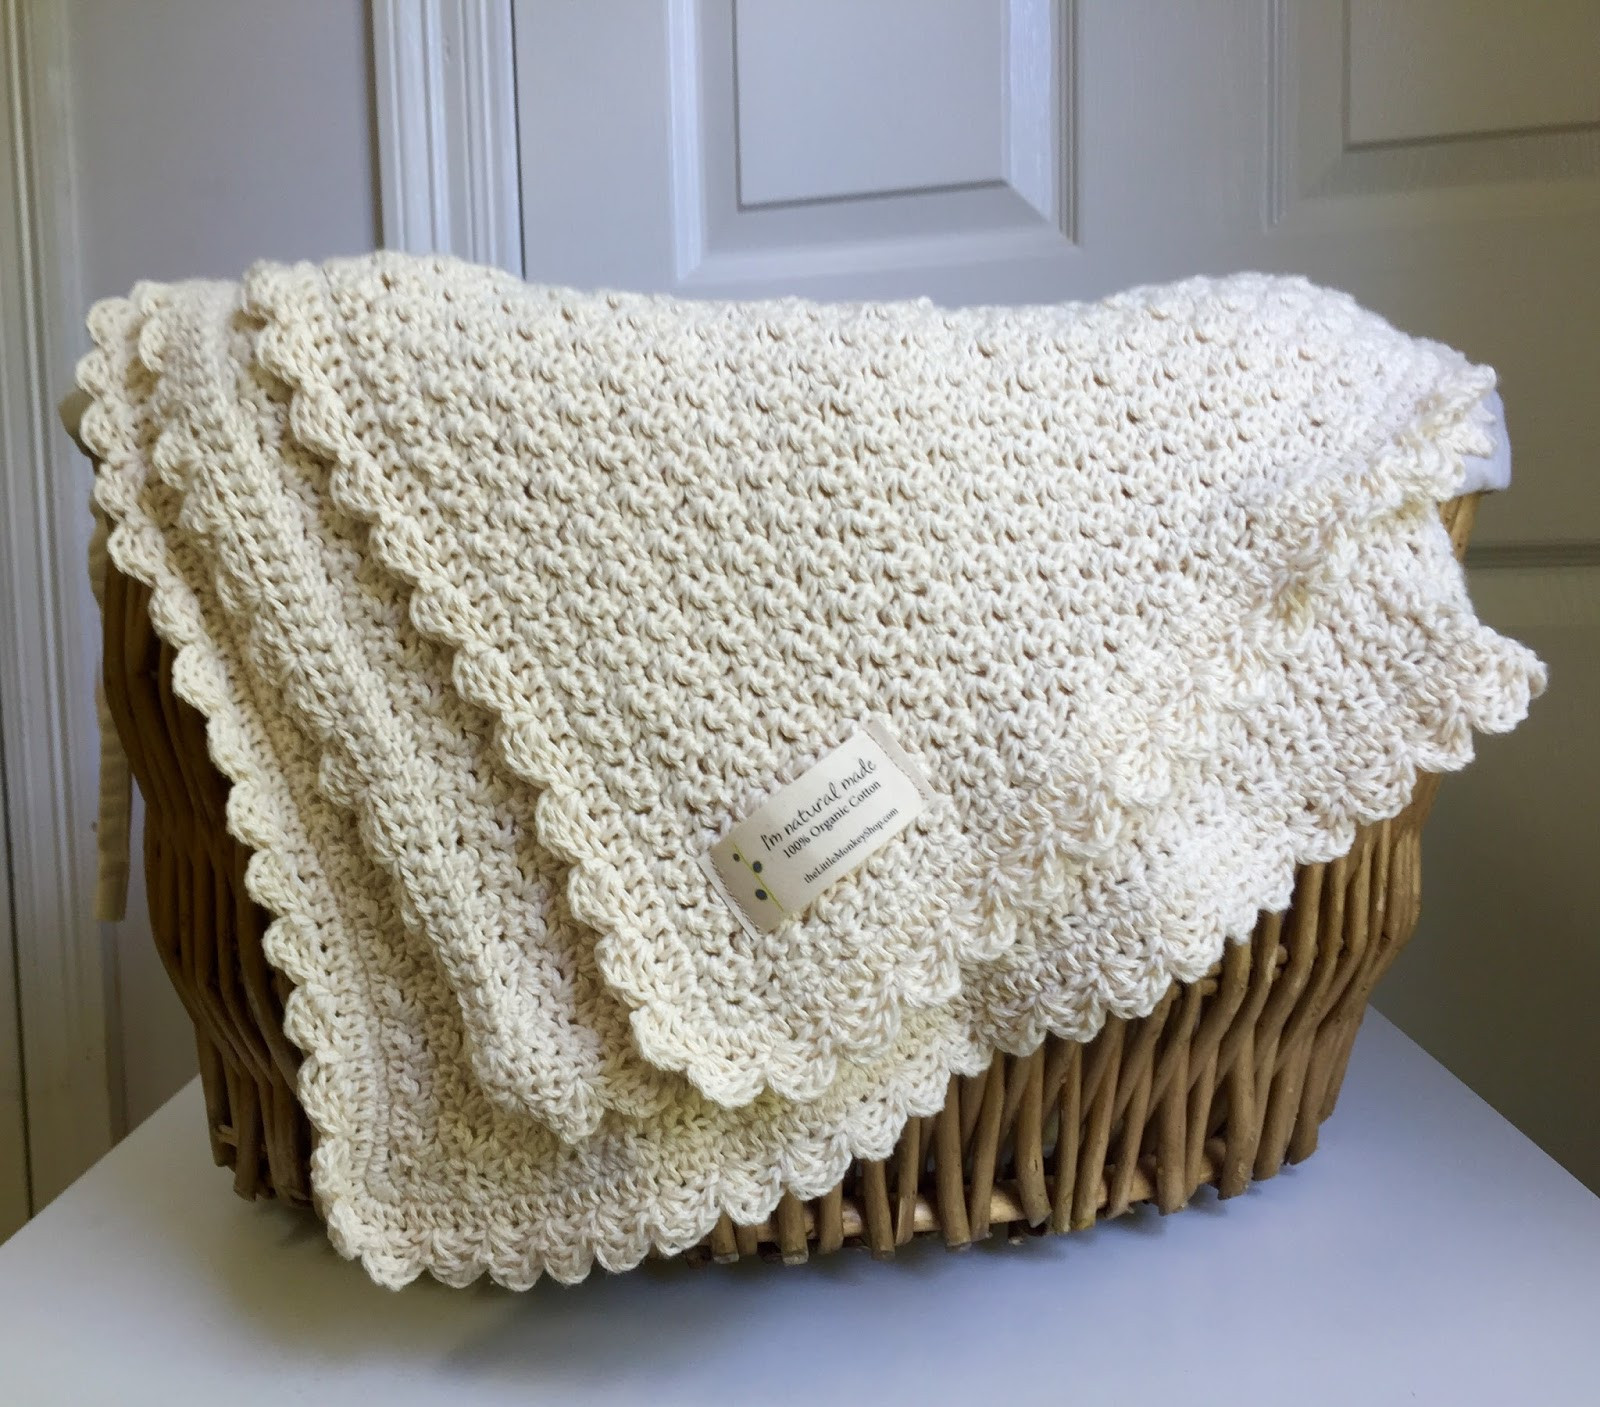 Crochet Throw Blanket Lovely Pure and Simple Baby Blanket A Simply Beautiful Crochet Of Great 44 Pics Crochet Throw Blanket